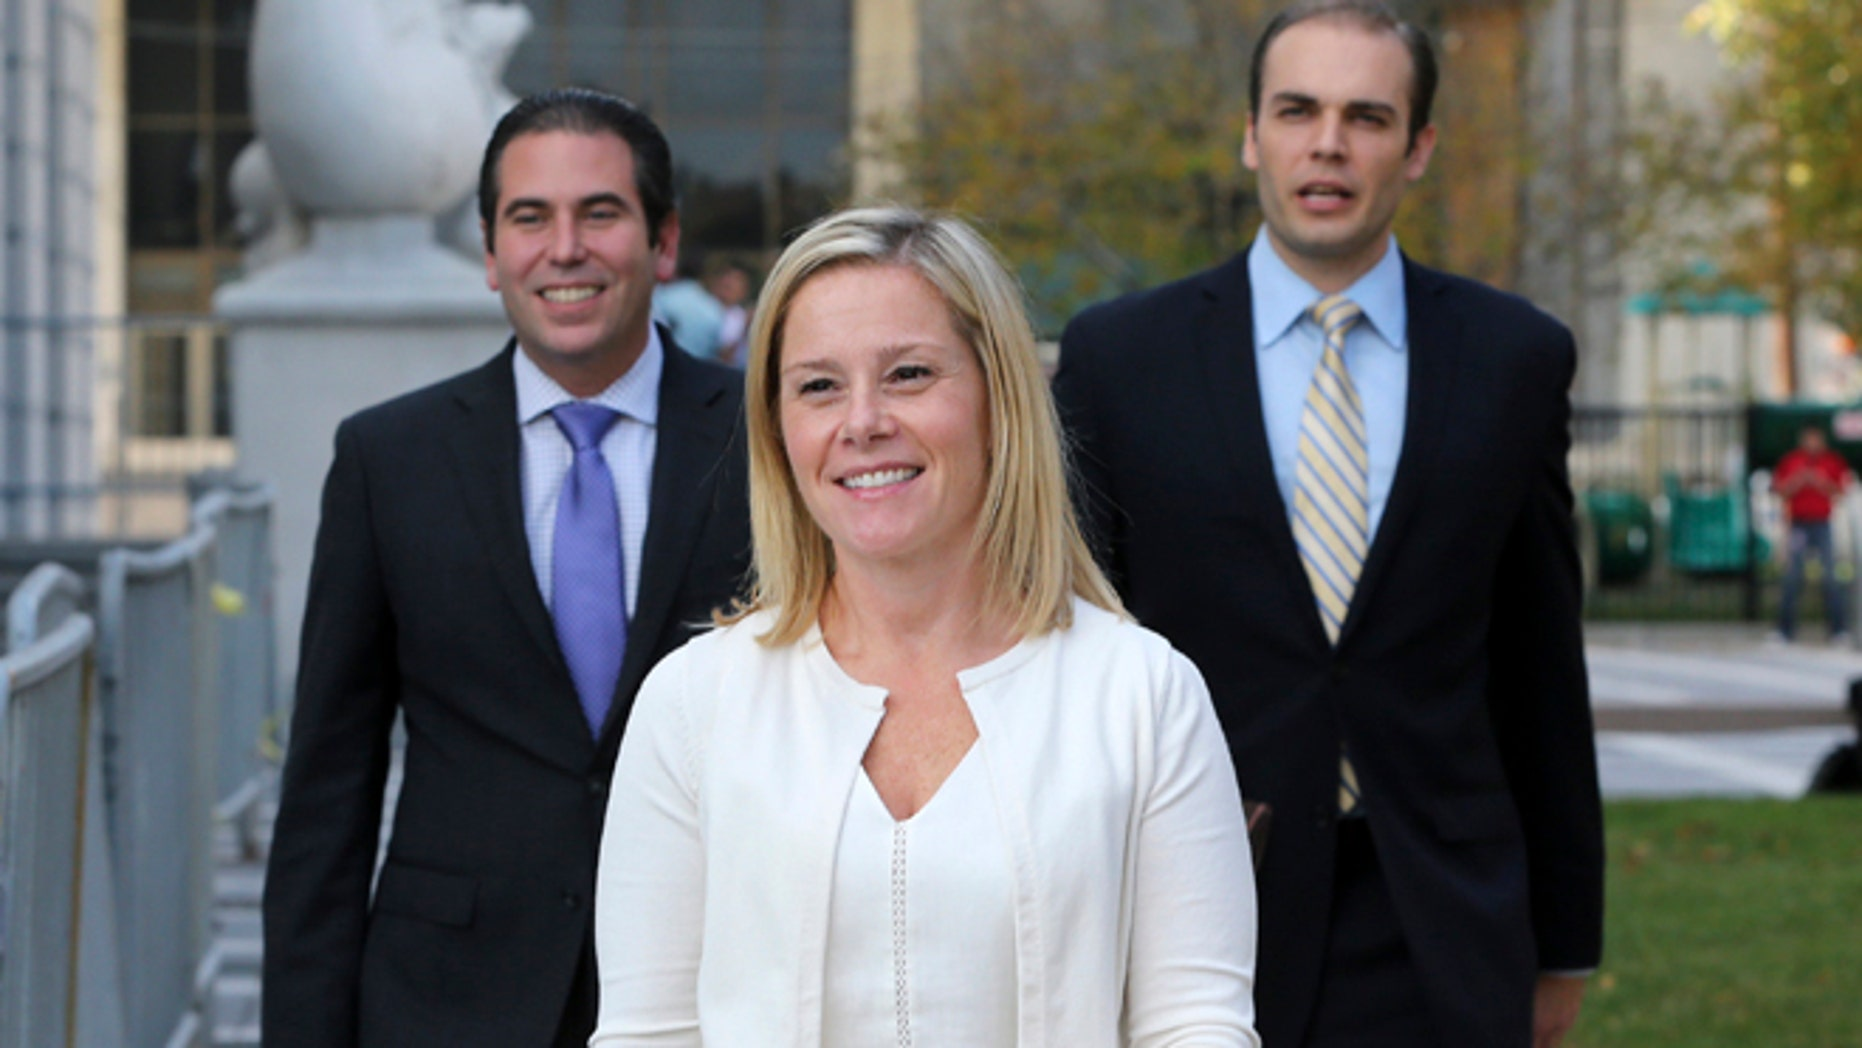 """FILE - In this Wednesday, Oct. 19, 2016 file photo, Gov. Chris Christie's former Deputy Chief of Staff Bridget Anne Kelly, center, leaves Martin Luther King Jr. Courthouse after a hearing, in Newark, N.J. Kelly, who prosecutors say sent the """"time for some traffic problems"""" email that started the George Washington Bridge lane-closing scandal is set to testify in her own defense. Kelly is expected to take the stand later Friday, Oct. 21, 2016, in federal court in Newark. (AP Photo/Mel Evans, File)"""